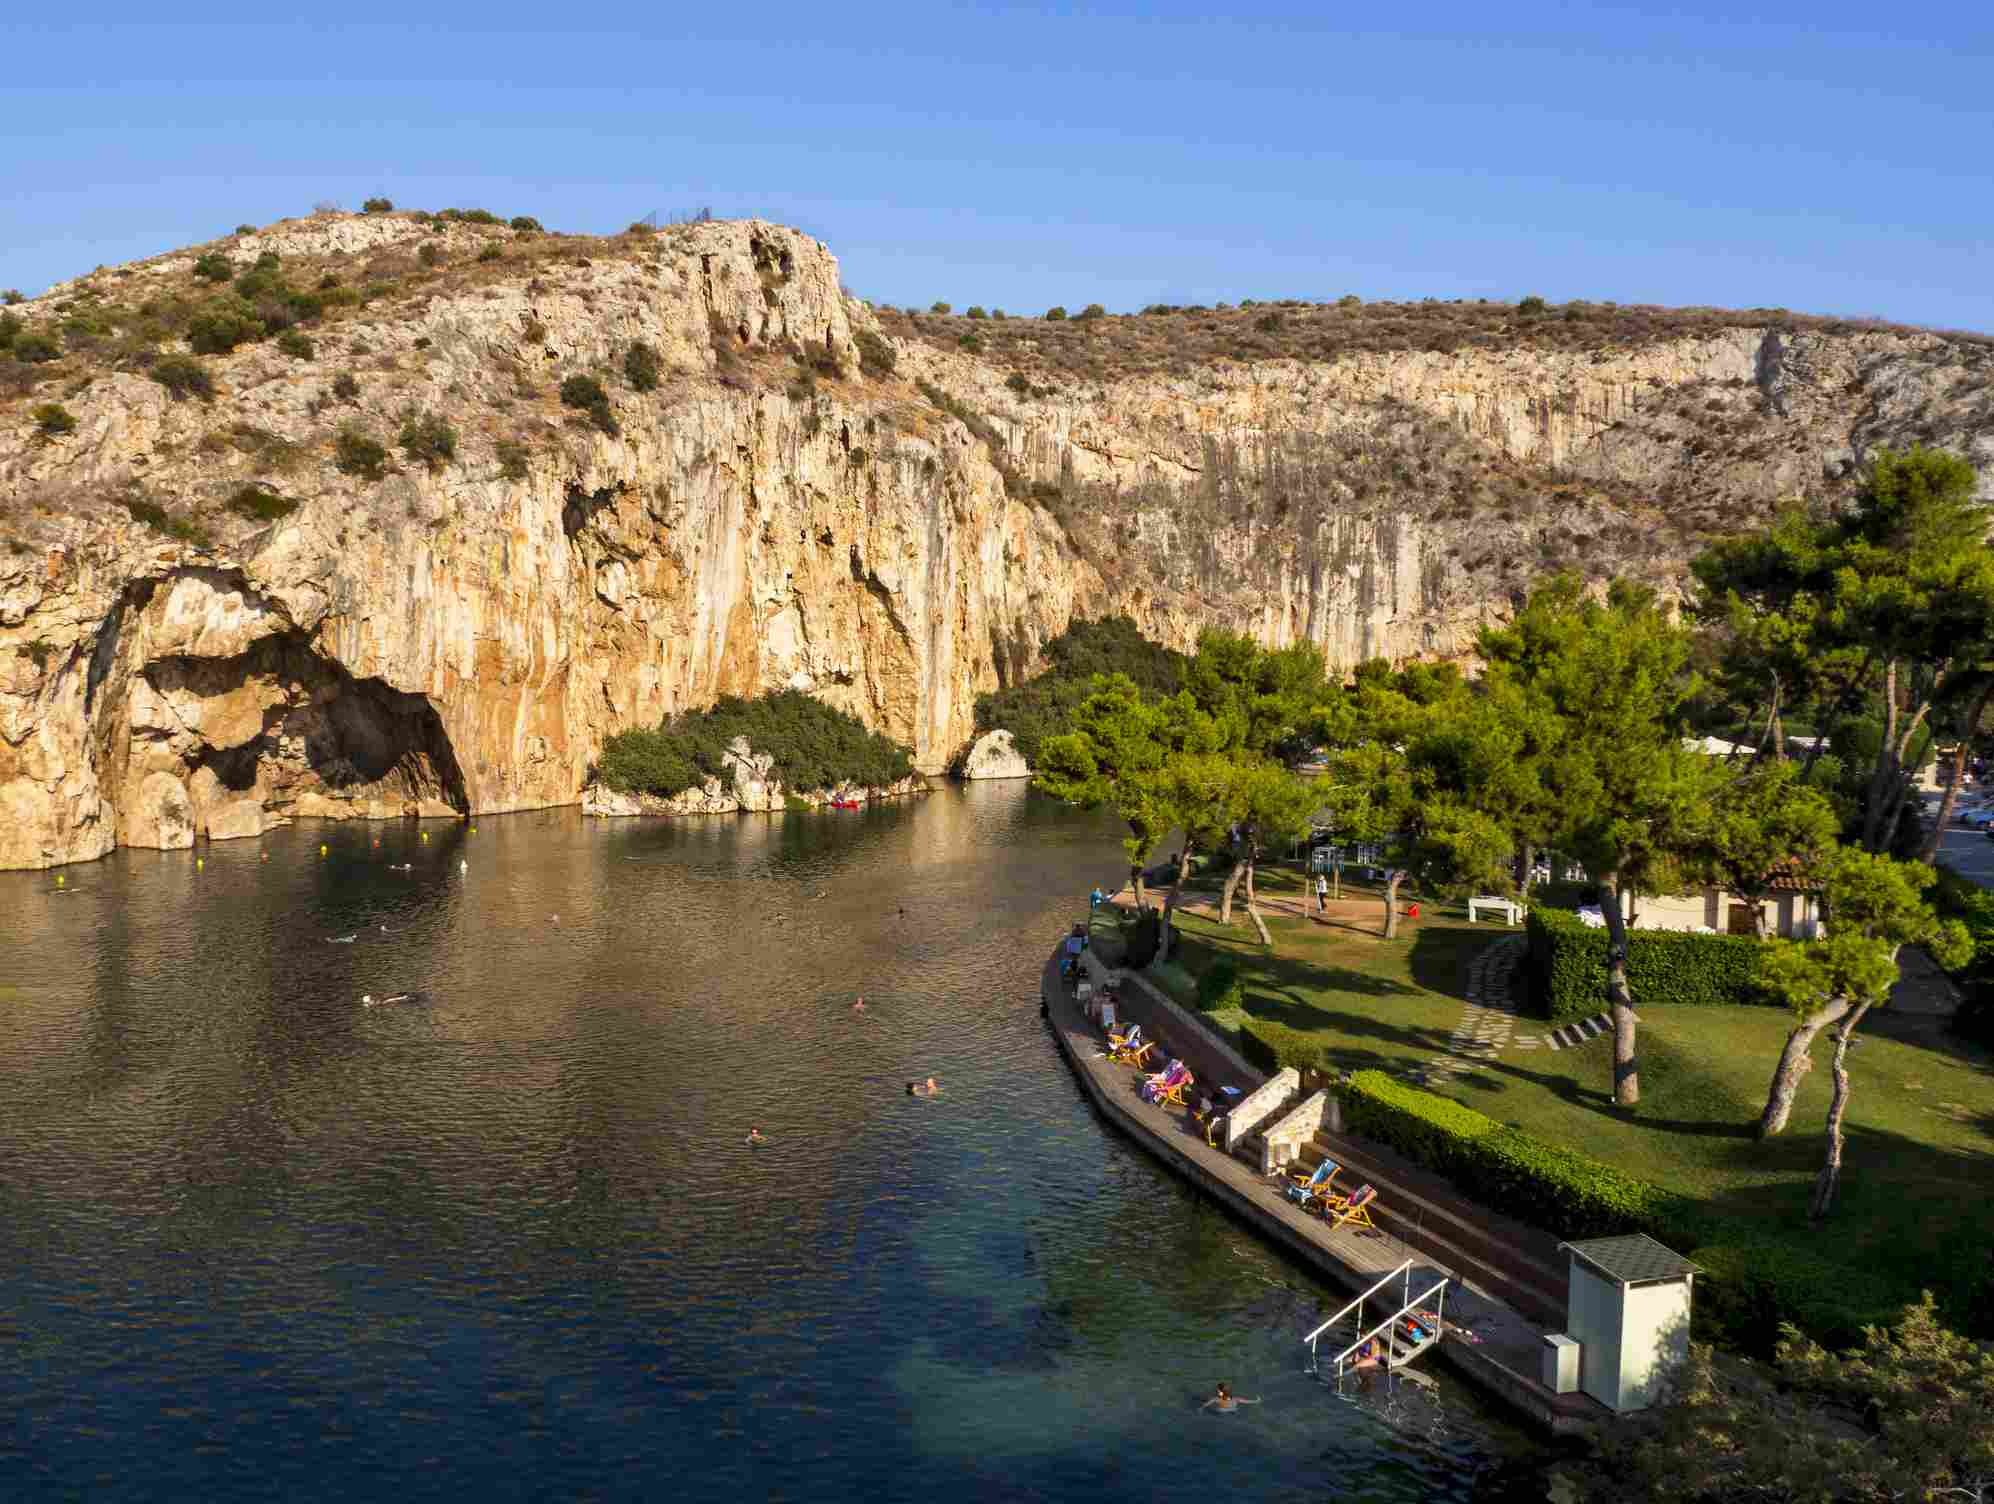 Vouliagmeni Lake in Greece with a rock formation in the background